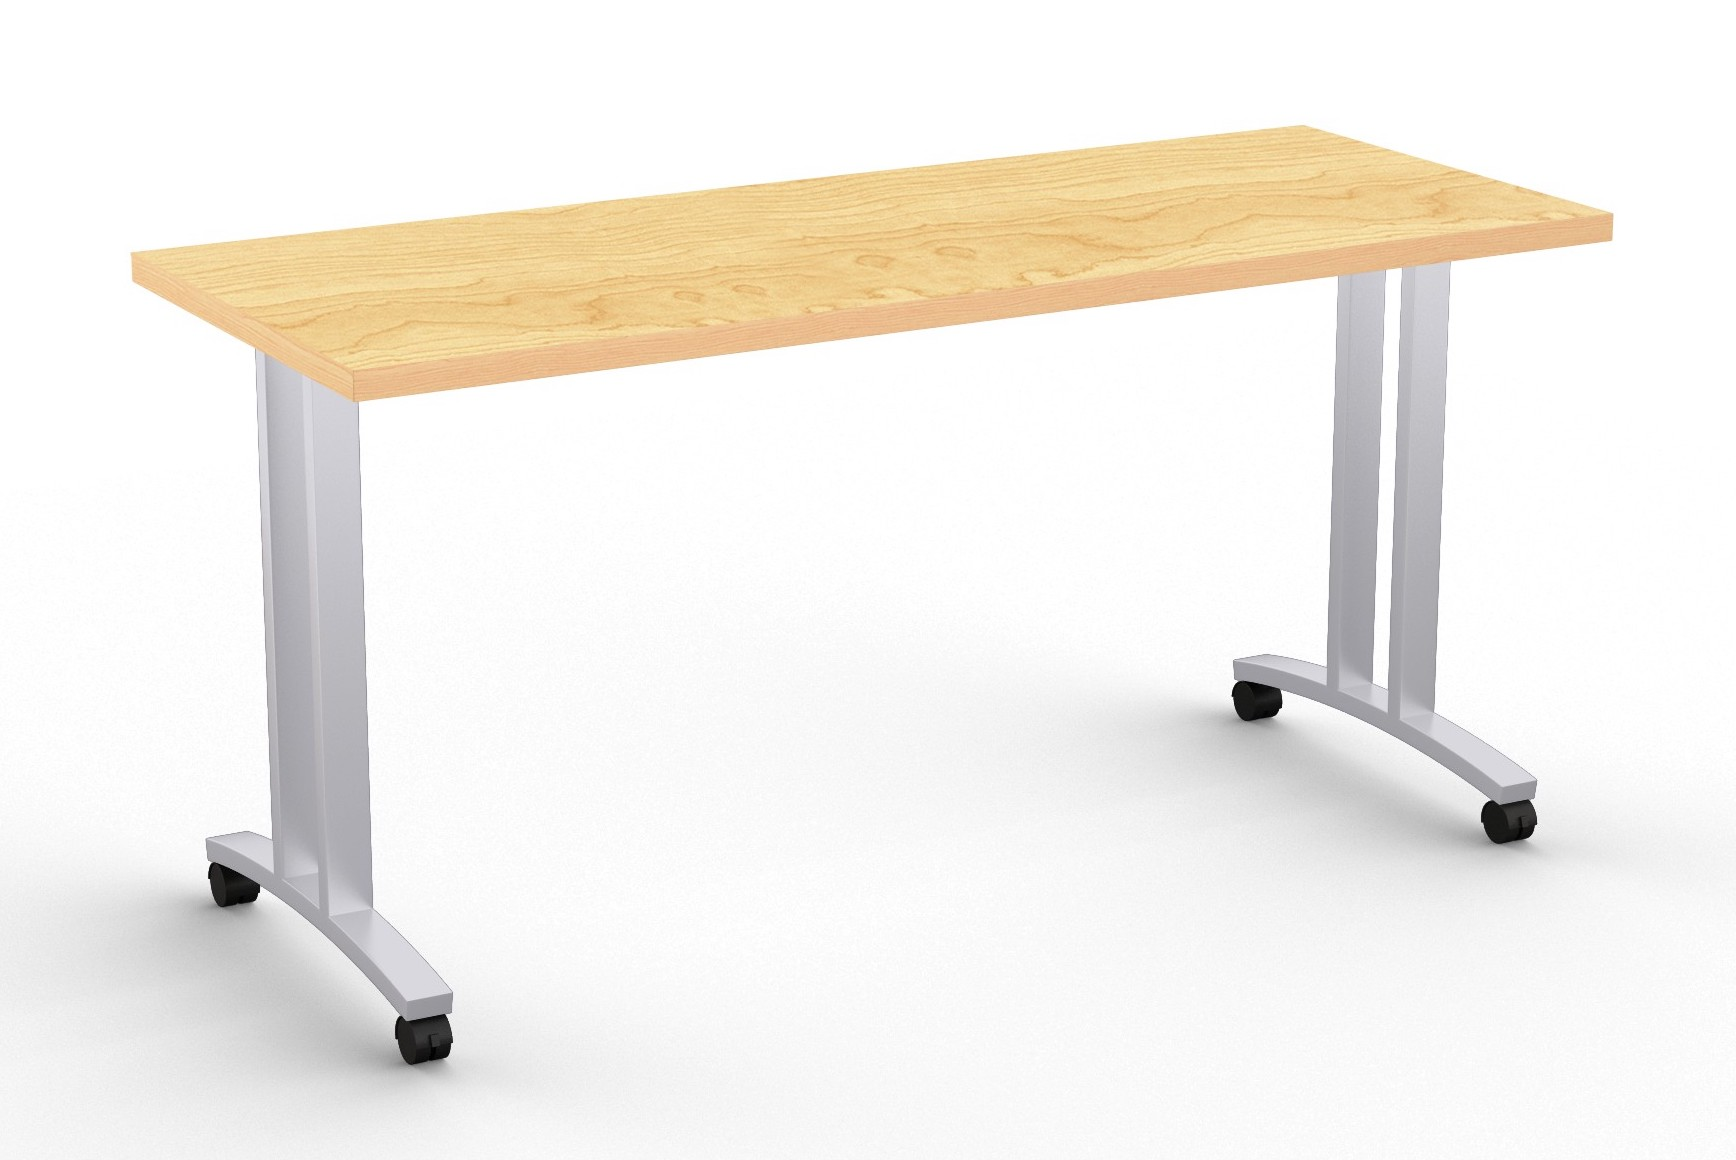 special-t structure t leg training table in crema maple